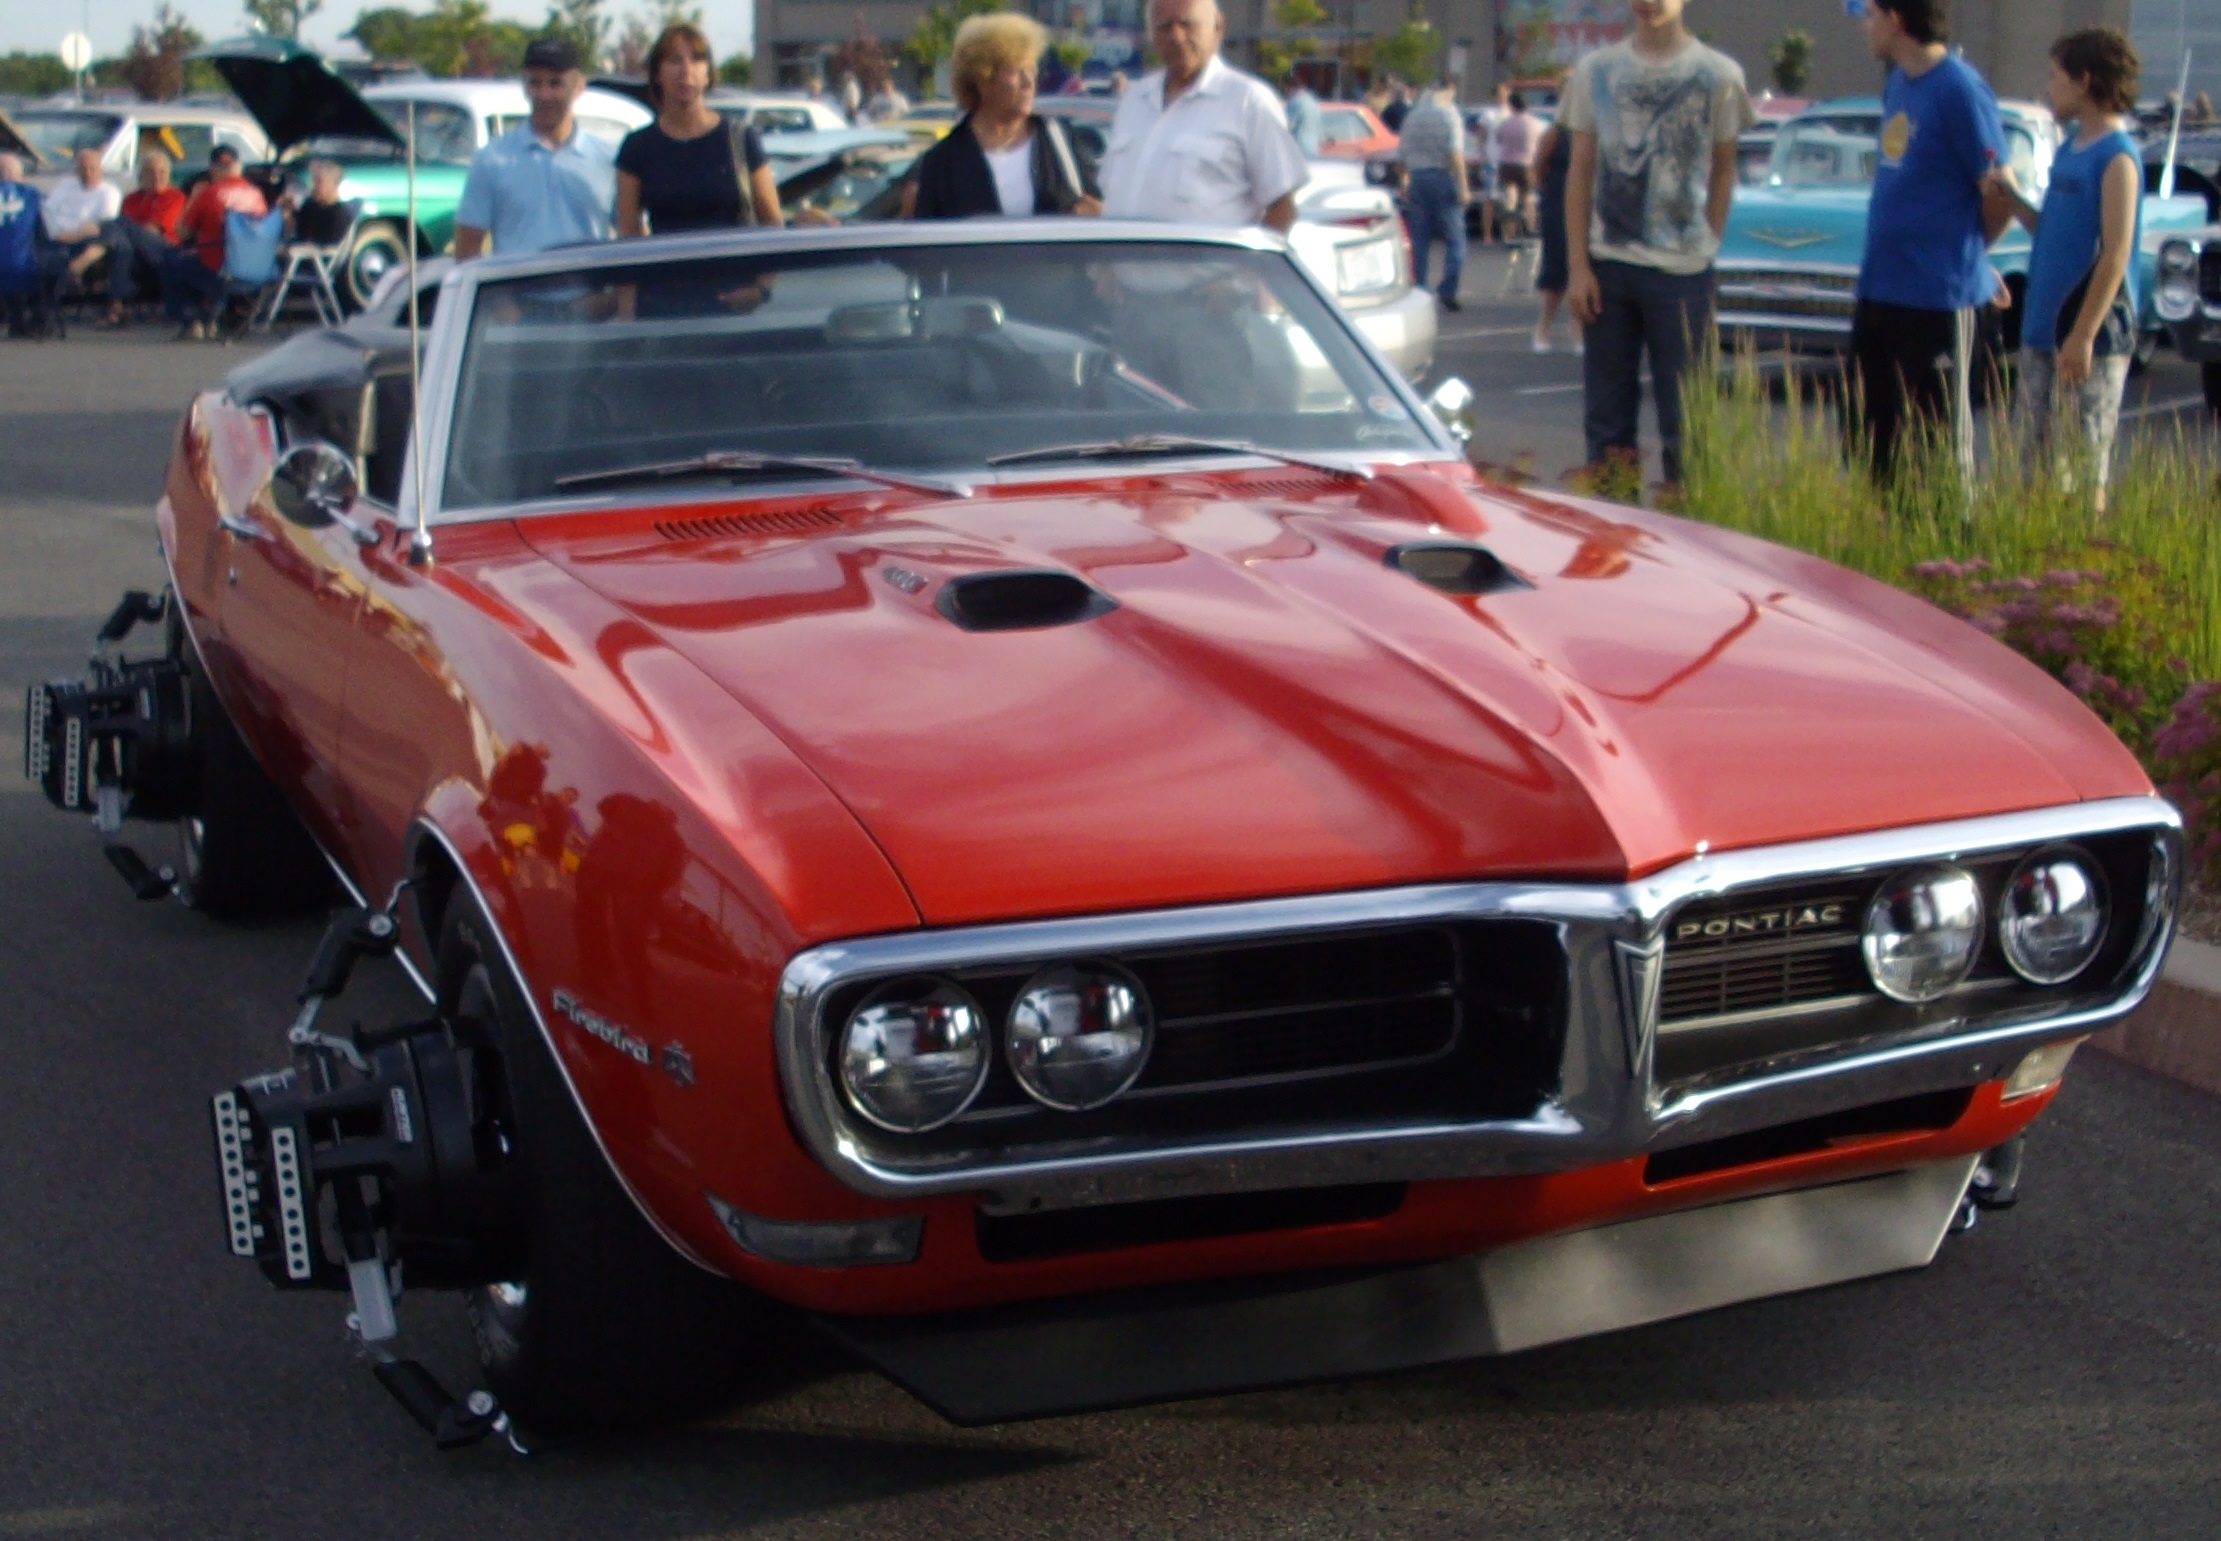 File 68 Pontiac Firebird Les Chauds Vendredis 12 Jpg